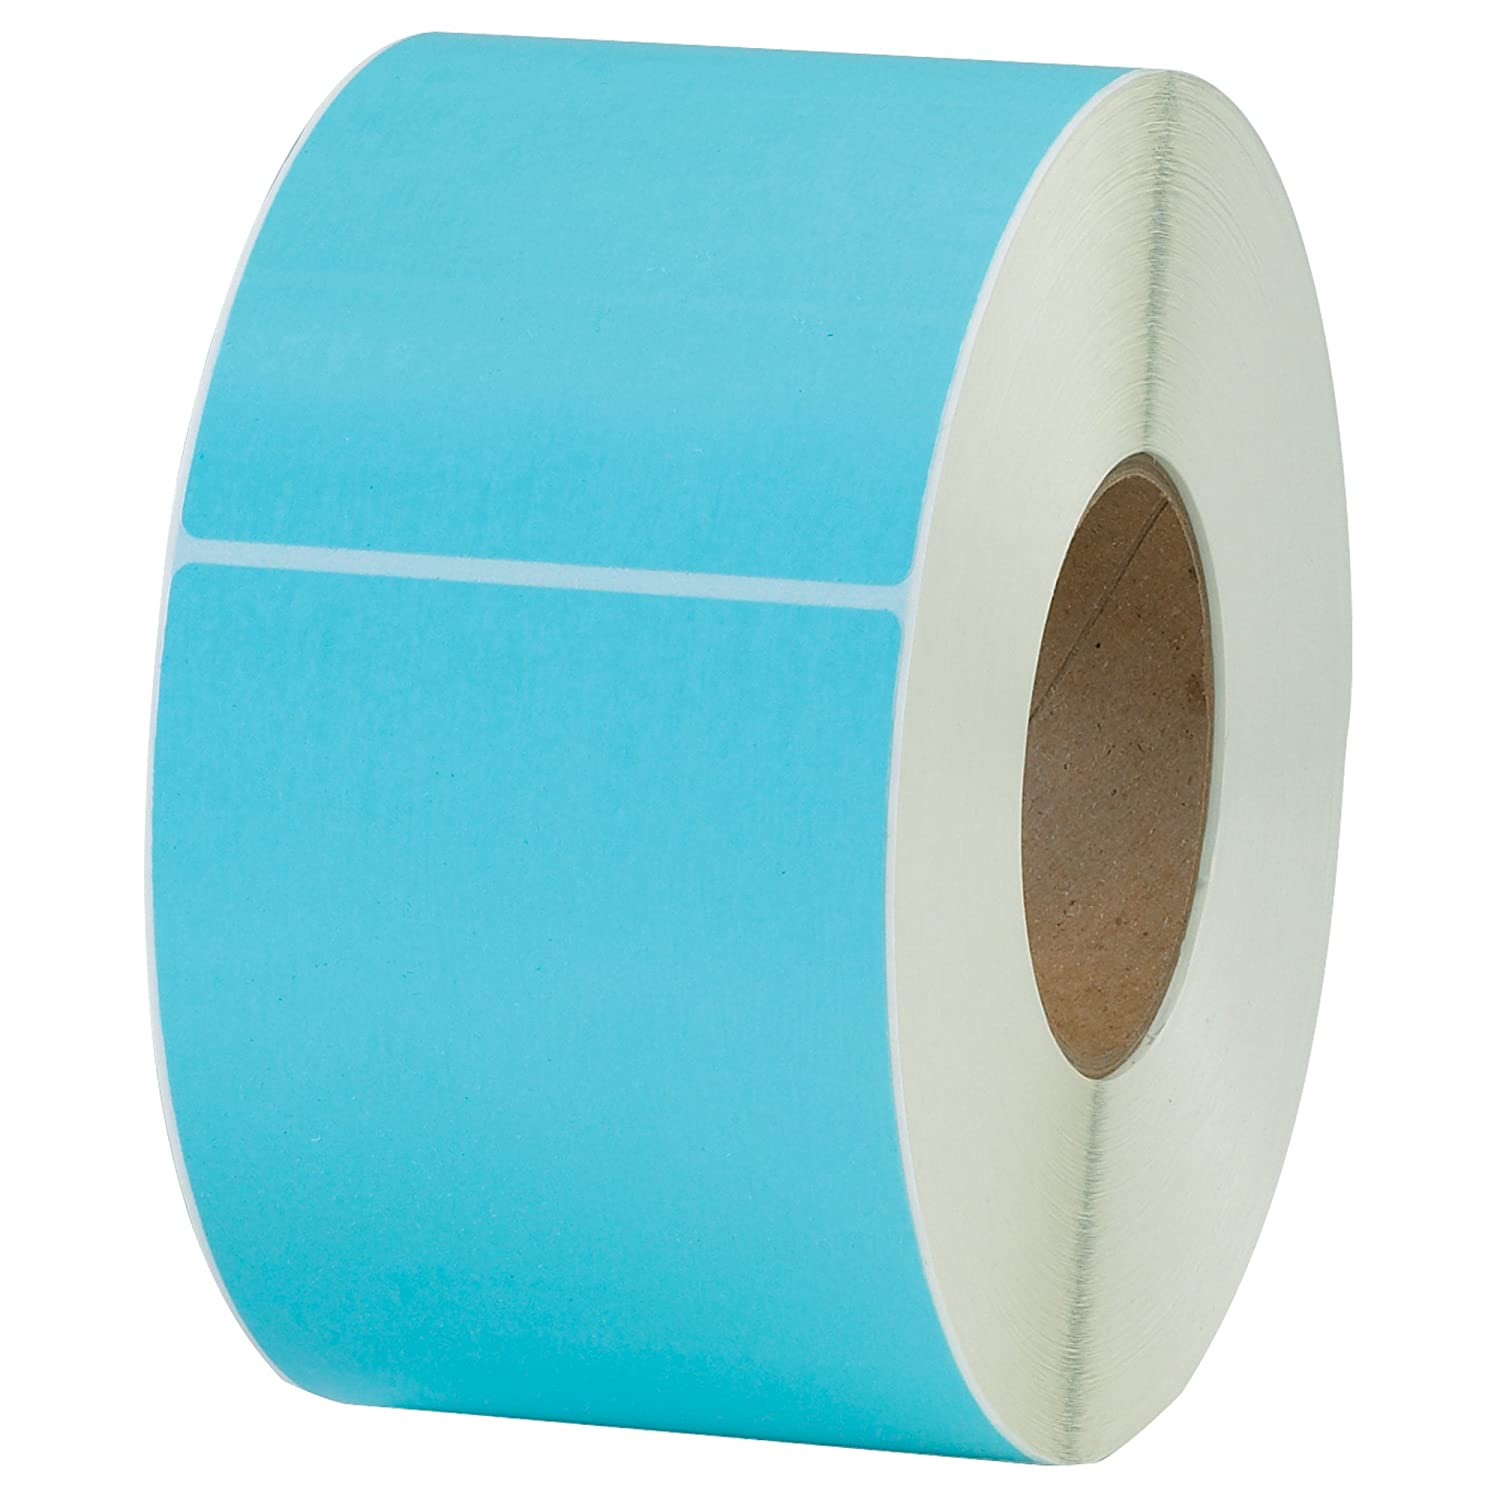 Boxes Fast Thermal Transfer Labels Pack of 4 4 x 6 Light Blue,